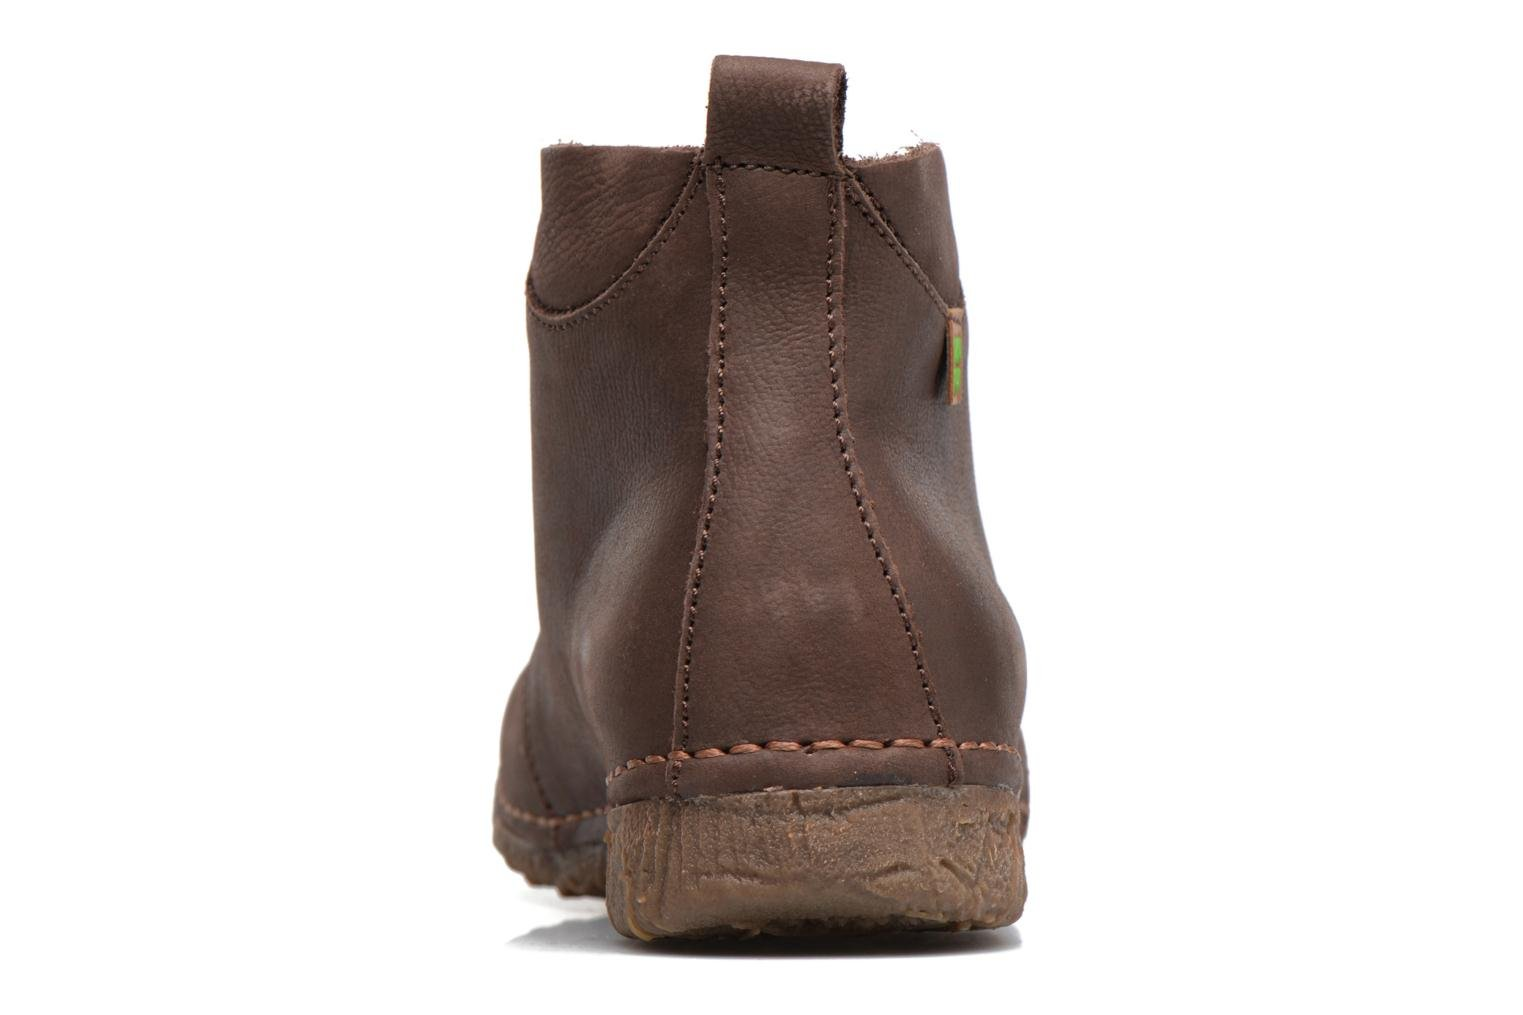 Ankor N974 Pleasant / Brown2